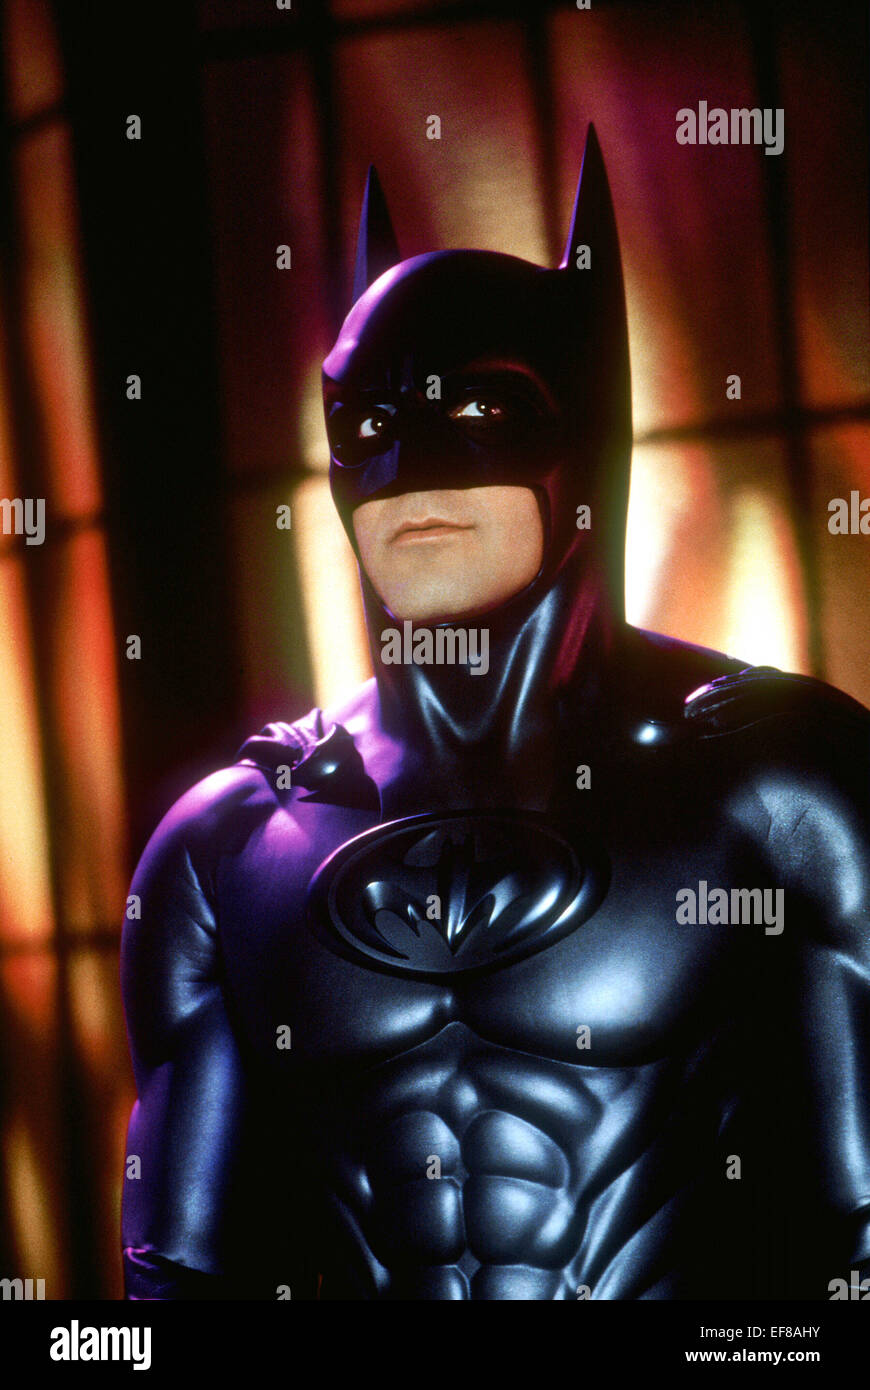 George Clooney Batman Robin 1997 Stock Photo Alamy